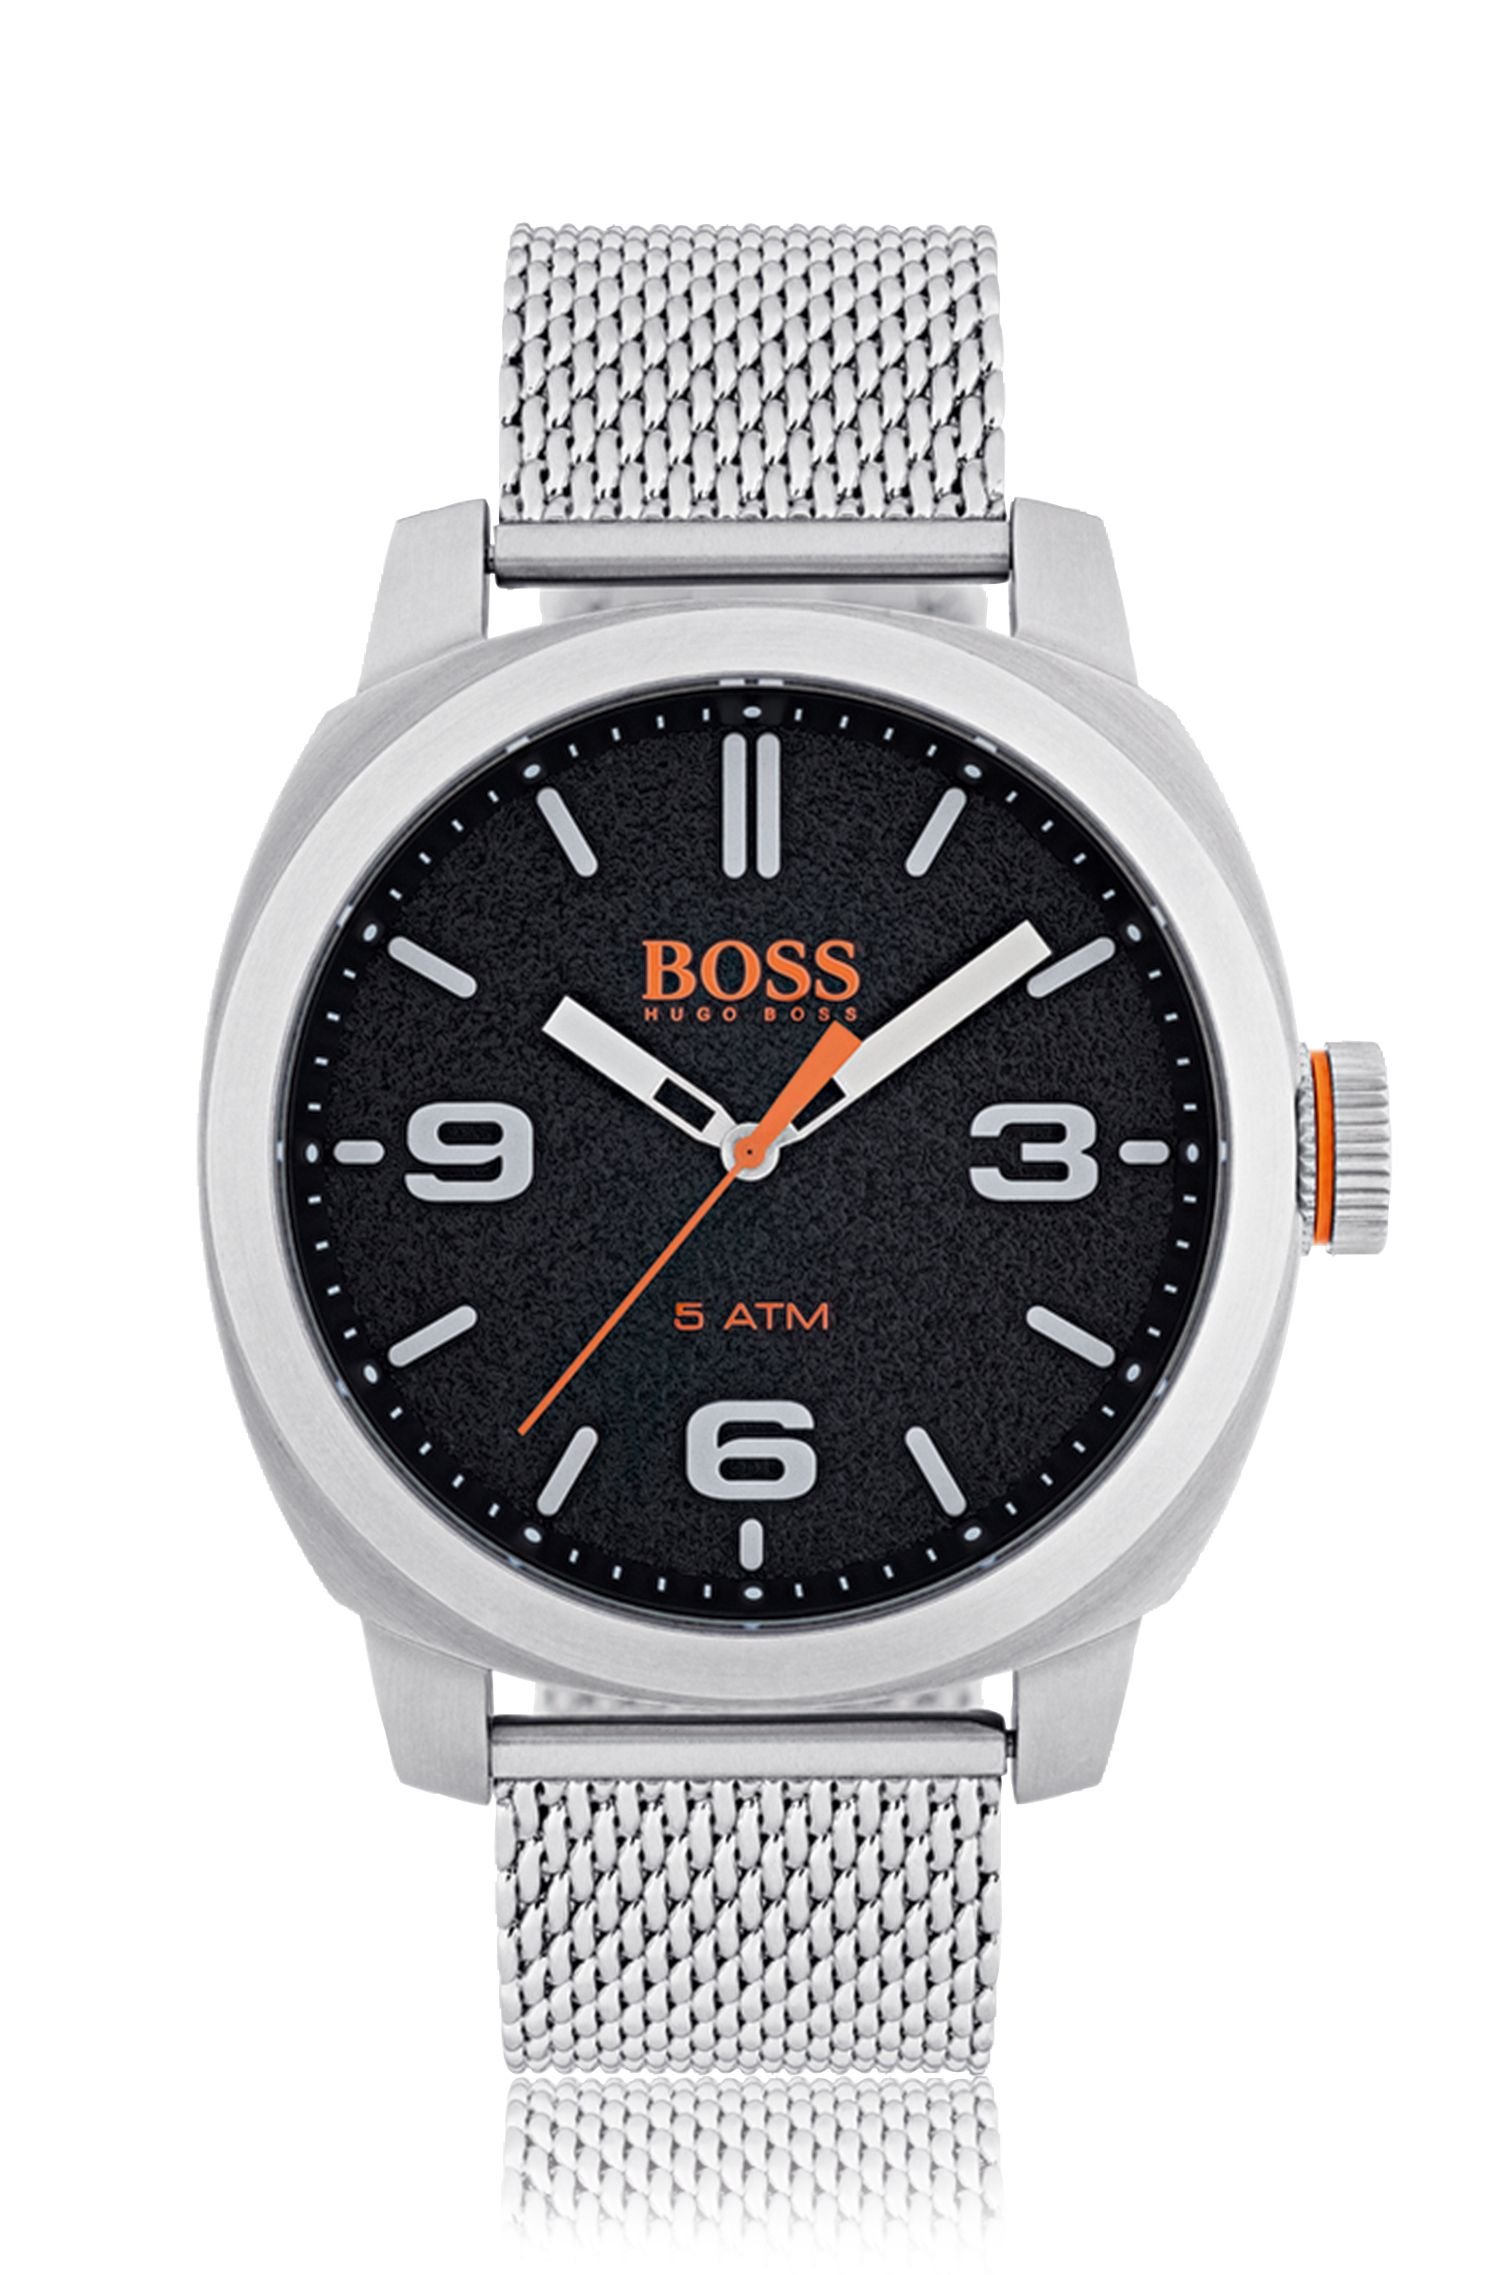 Brushed stainless-steel watch with black dial and mesh bracelet